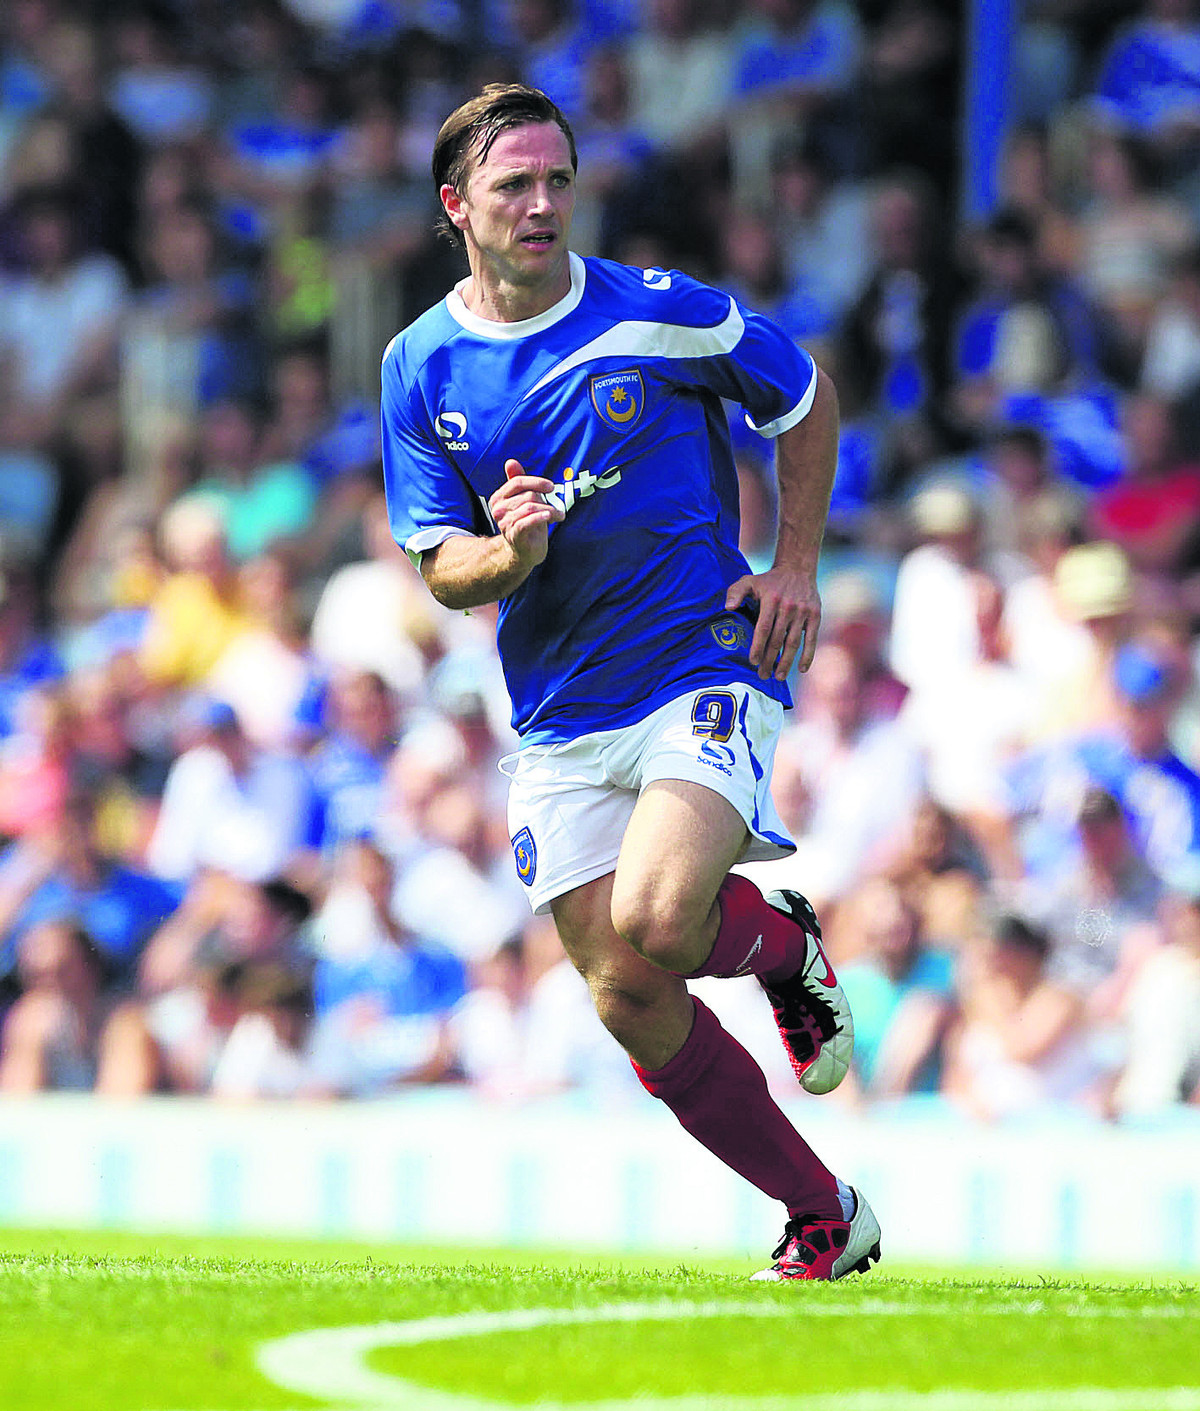 David Connolly is keen to make a big impression during his loan spell at Oxford Picture: Portsmouth News/Joe Pepler